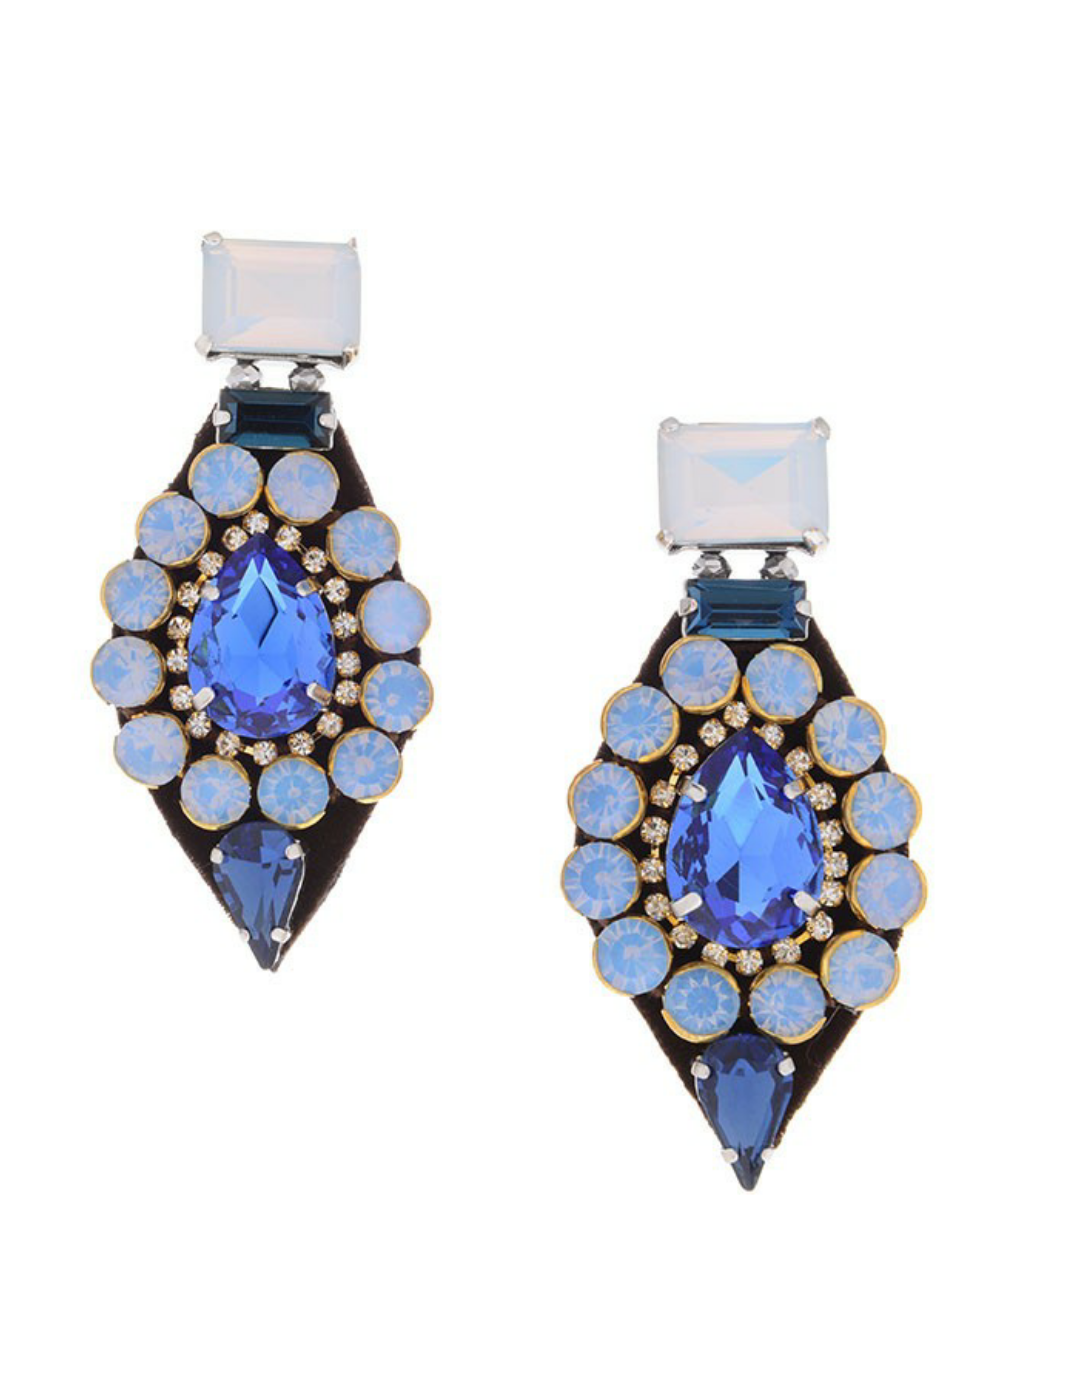 UC LUXE: Blue Floral Statement Earrings